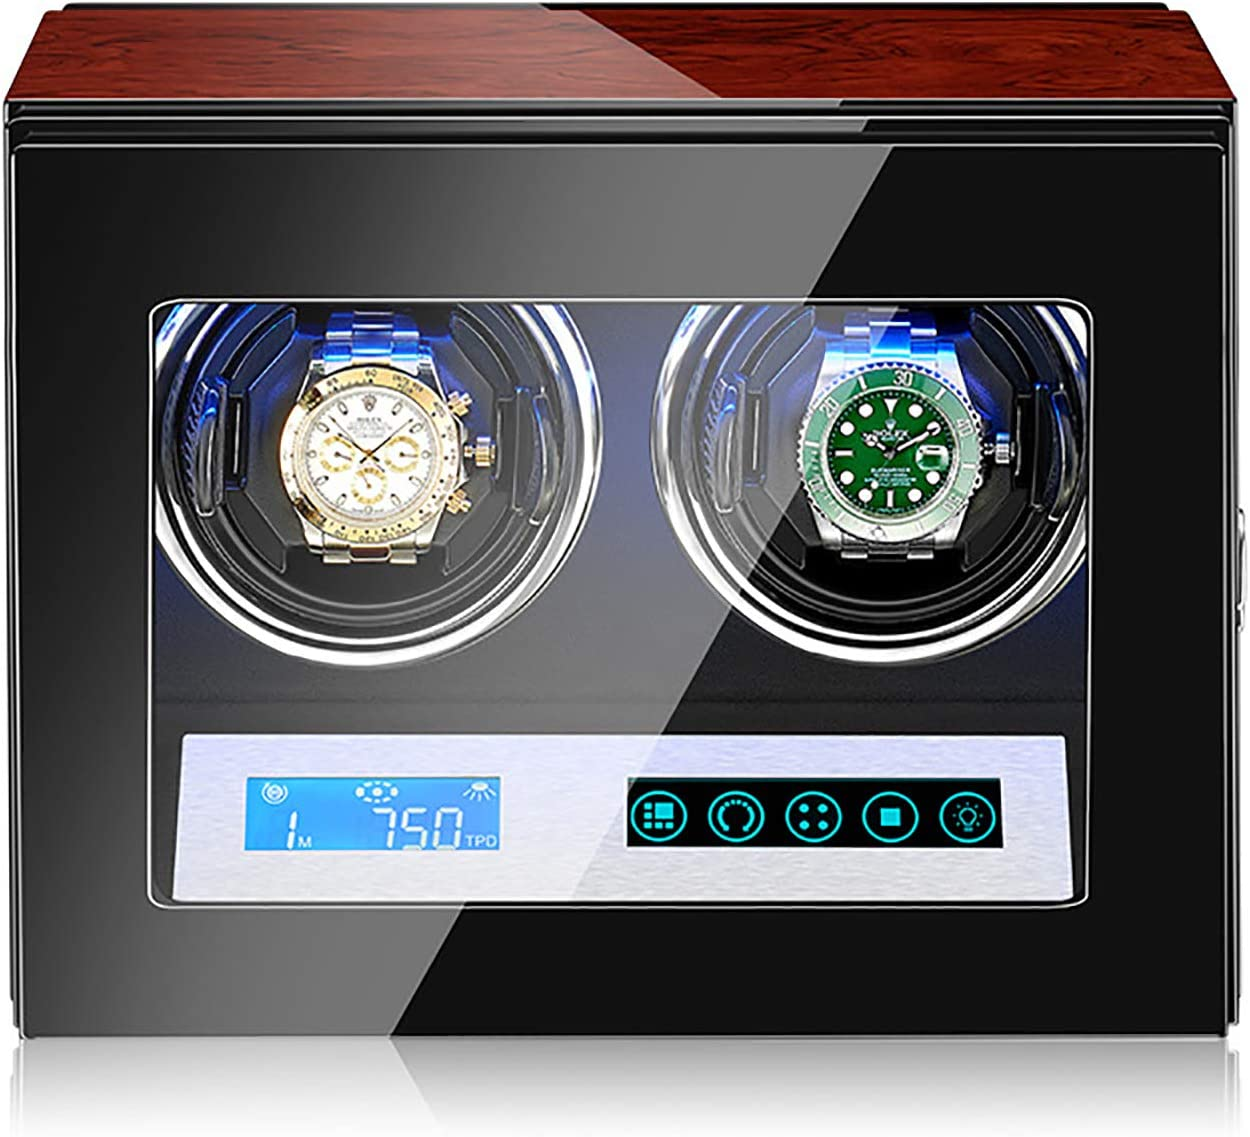 Mxmoonant Touch Screen Watch Winder Fees free!! Box Watches Shipping included Automatic